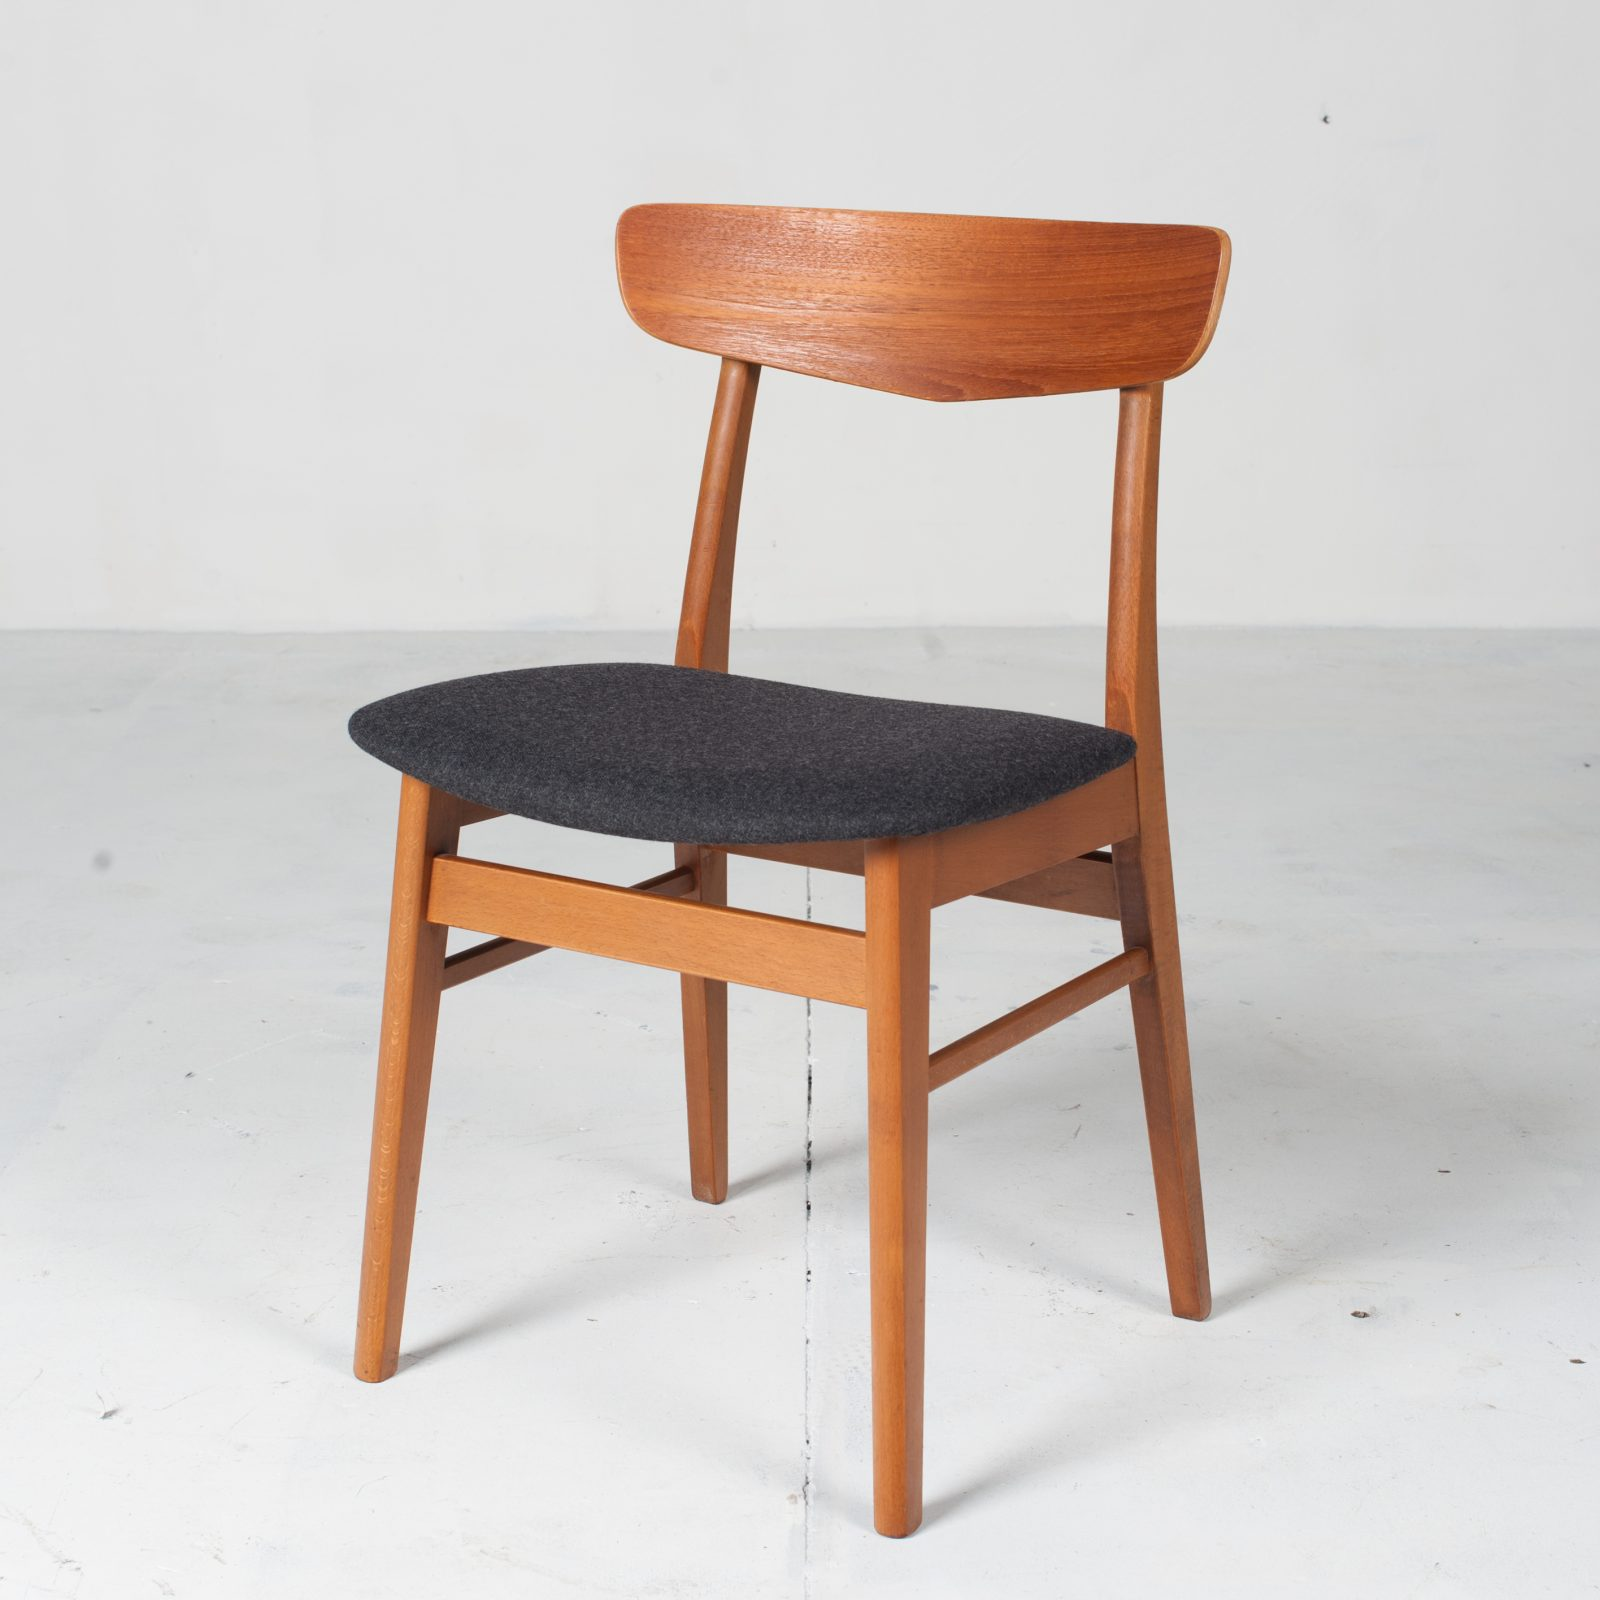 V Back Dining Chairs By Farstrup In Teak And New Navy Upholstery 1960s Denmark 01